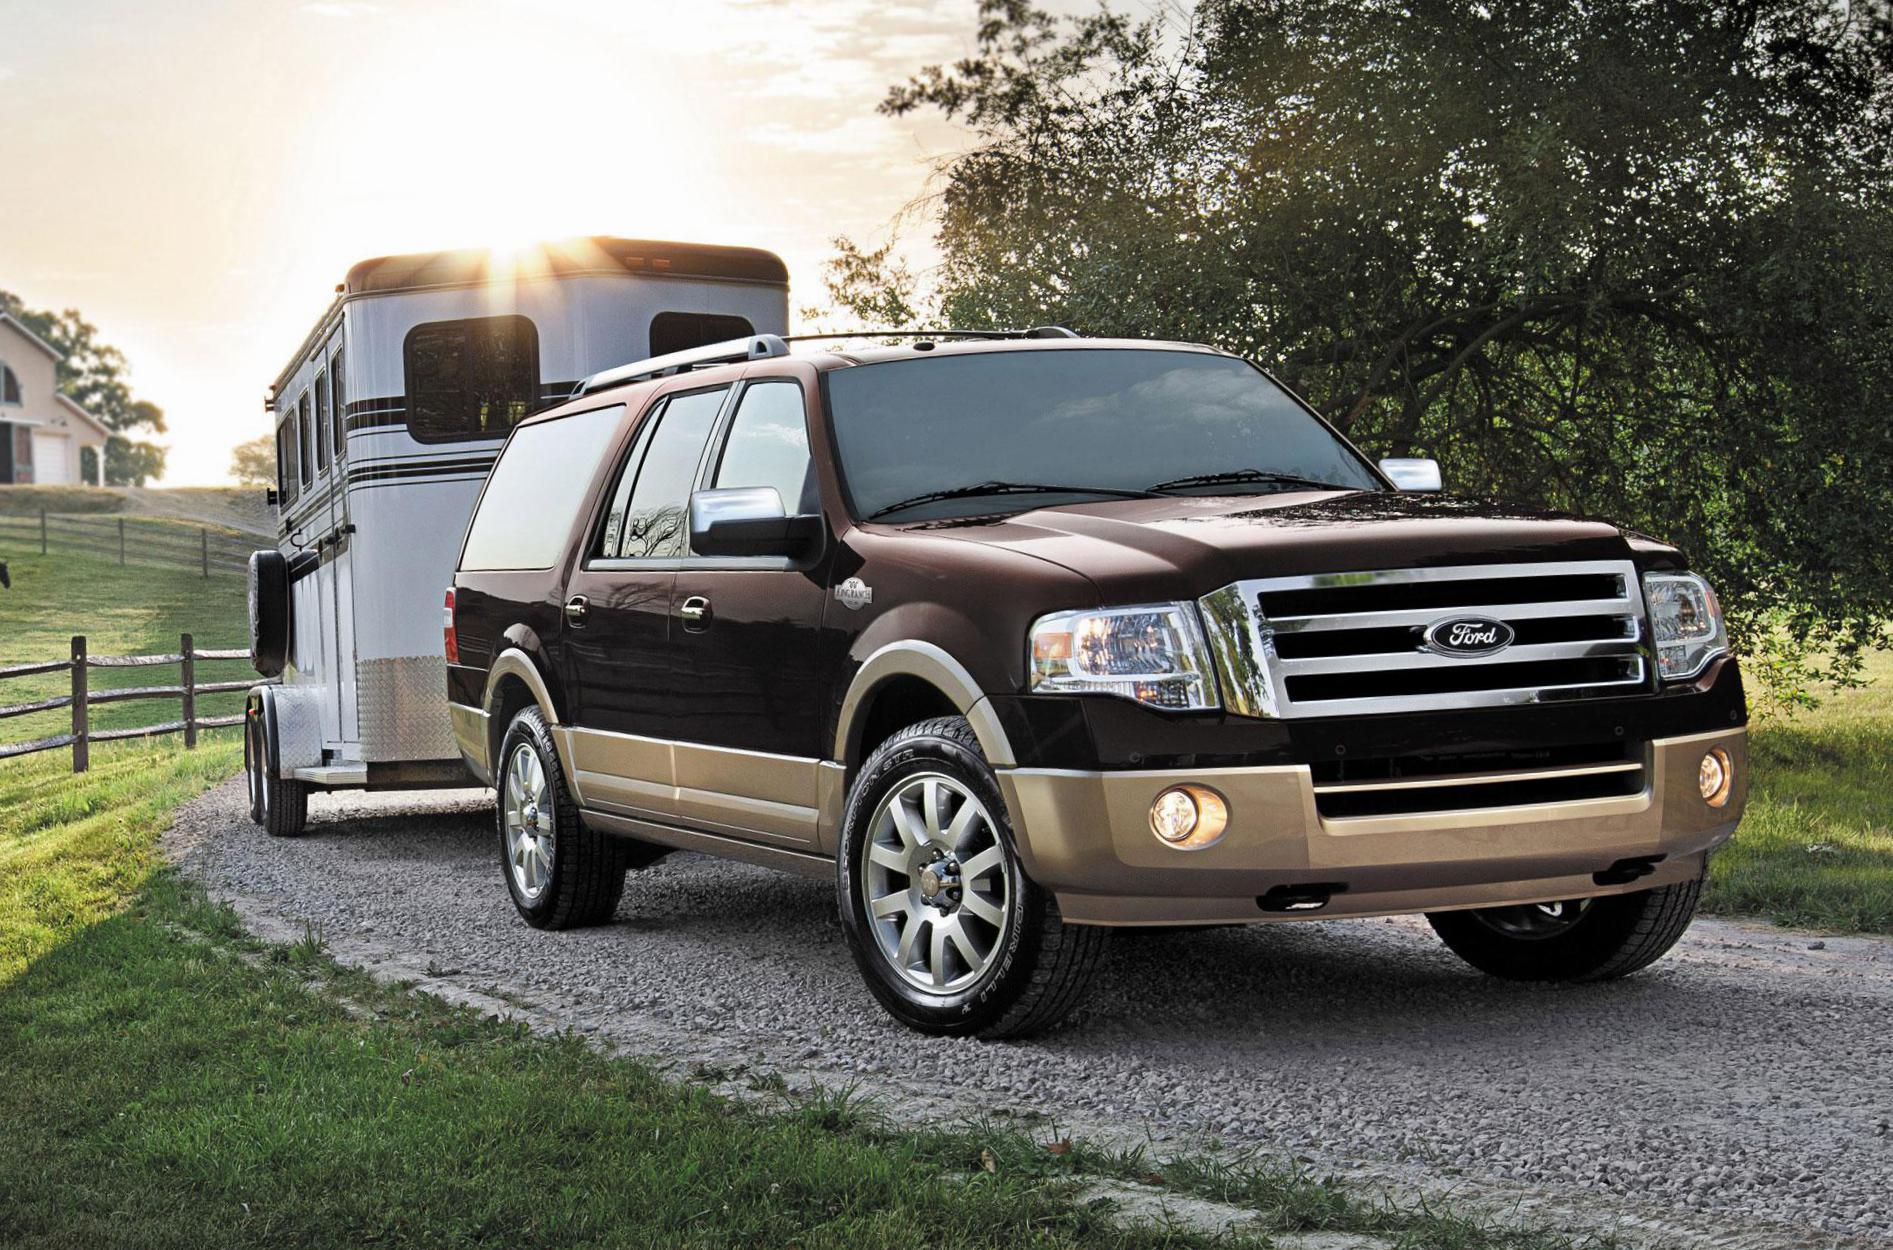 Ford Expedition new suv